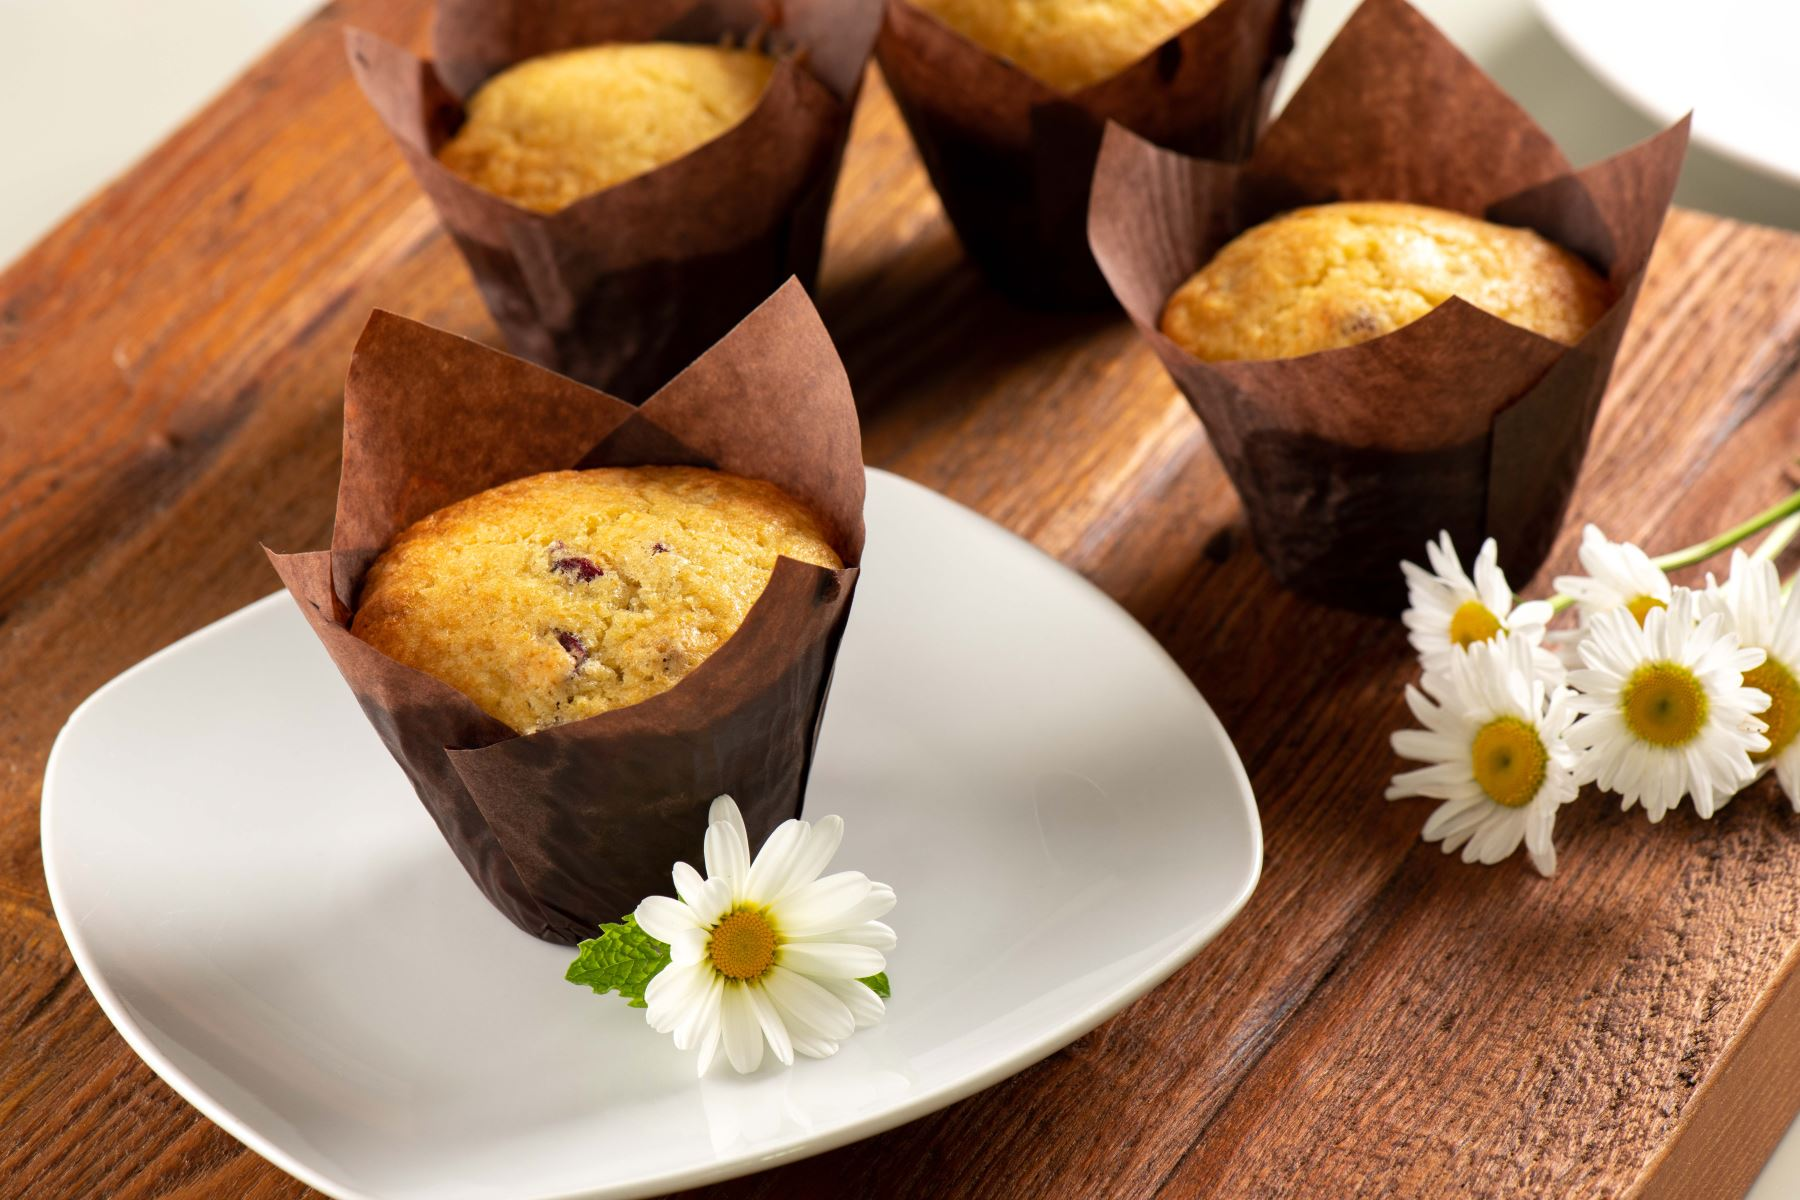 muffins served for breakfast